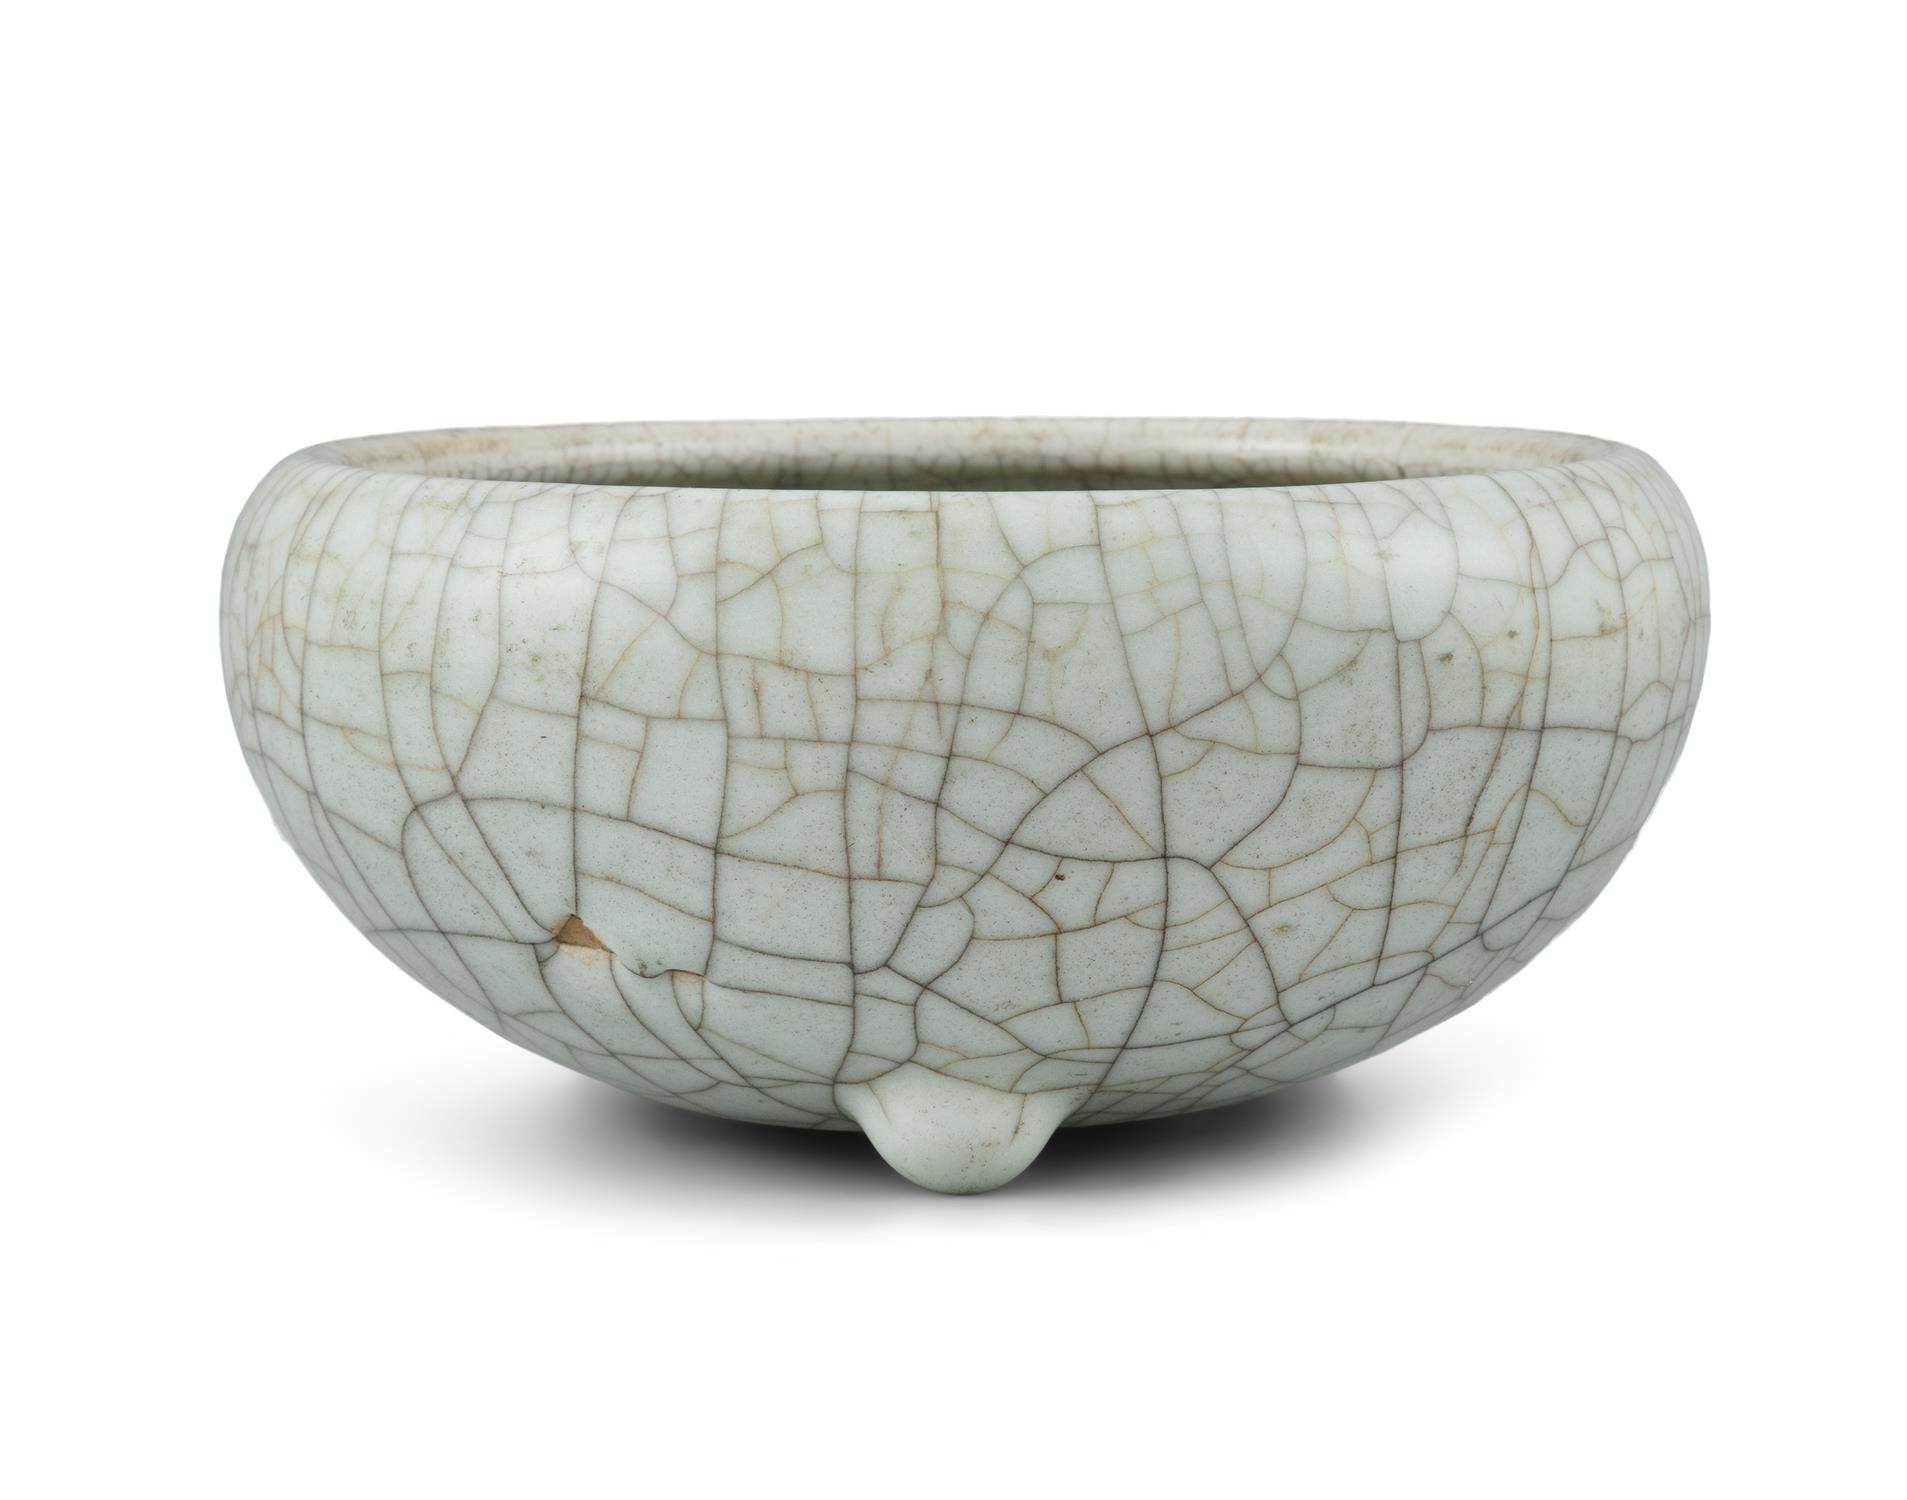 A GEYAO TYPE CRACKLED-CELADON GLAZED GLOBULAR INCENSE-BURNER China, Late Qing to Republican period - Image 9 of 11